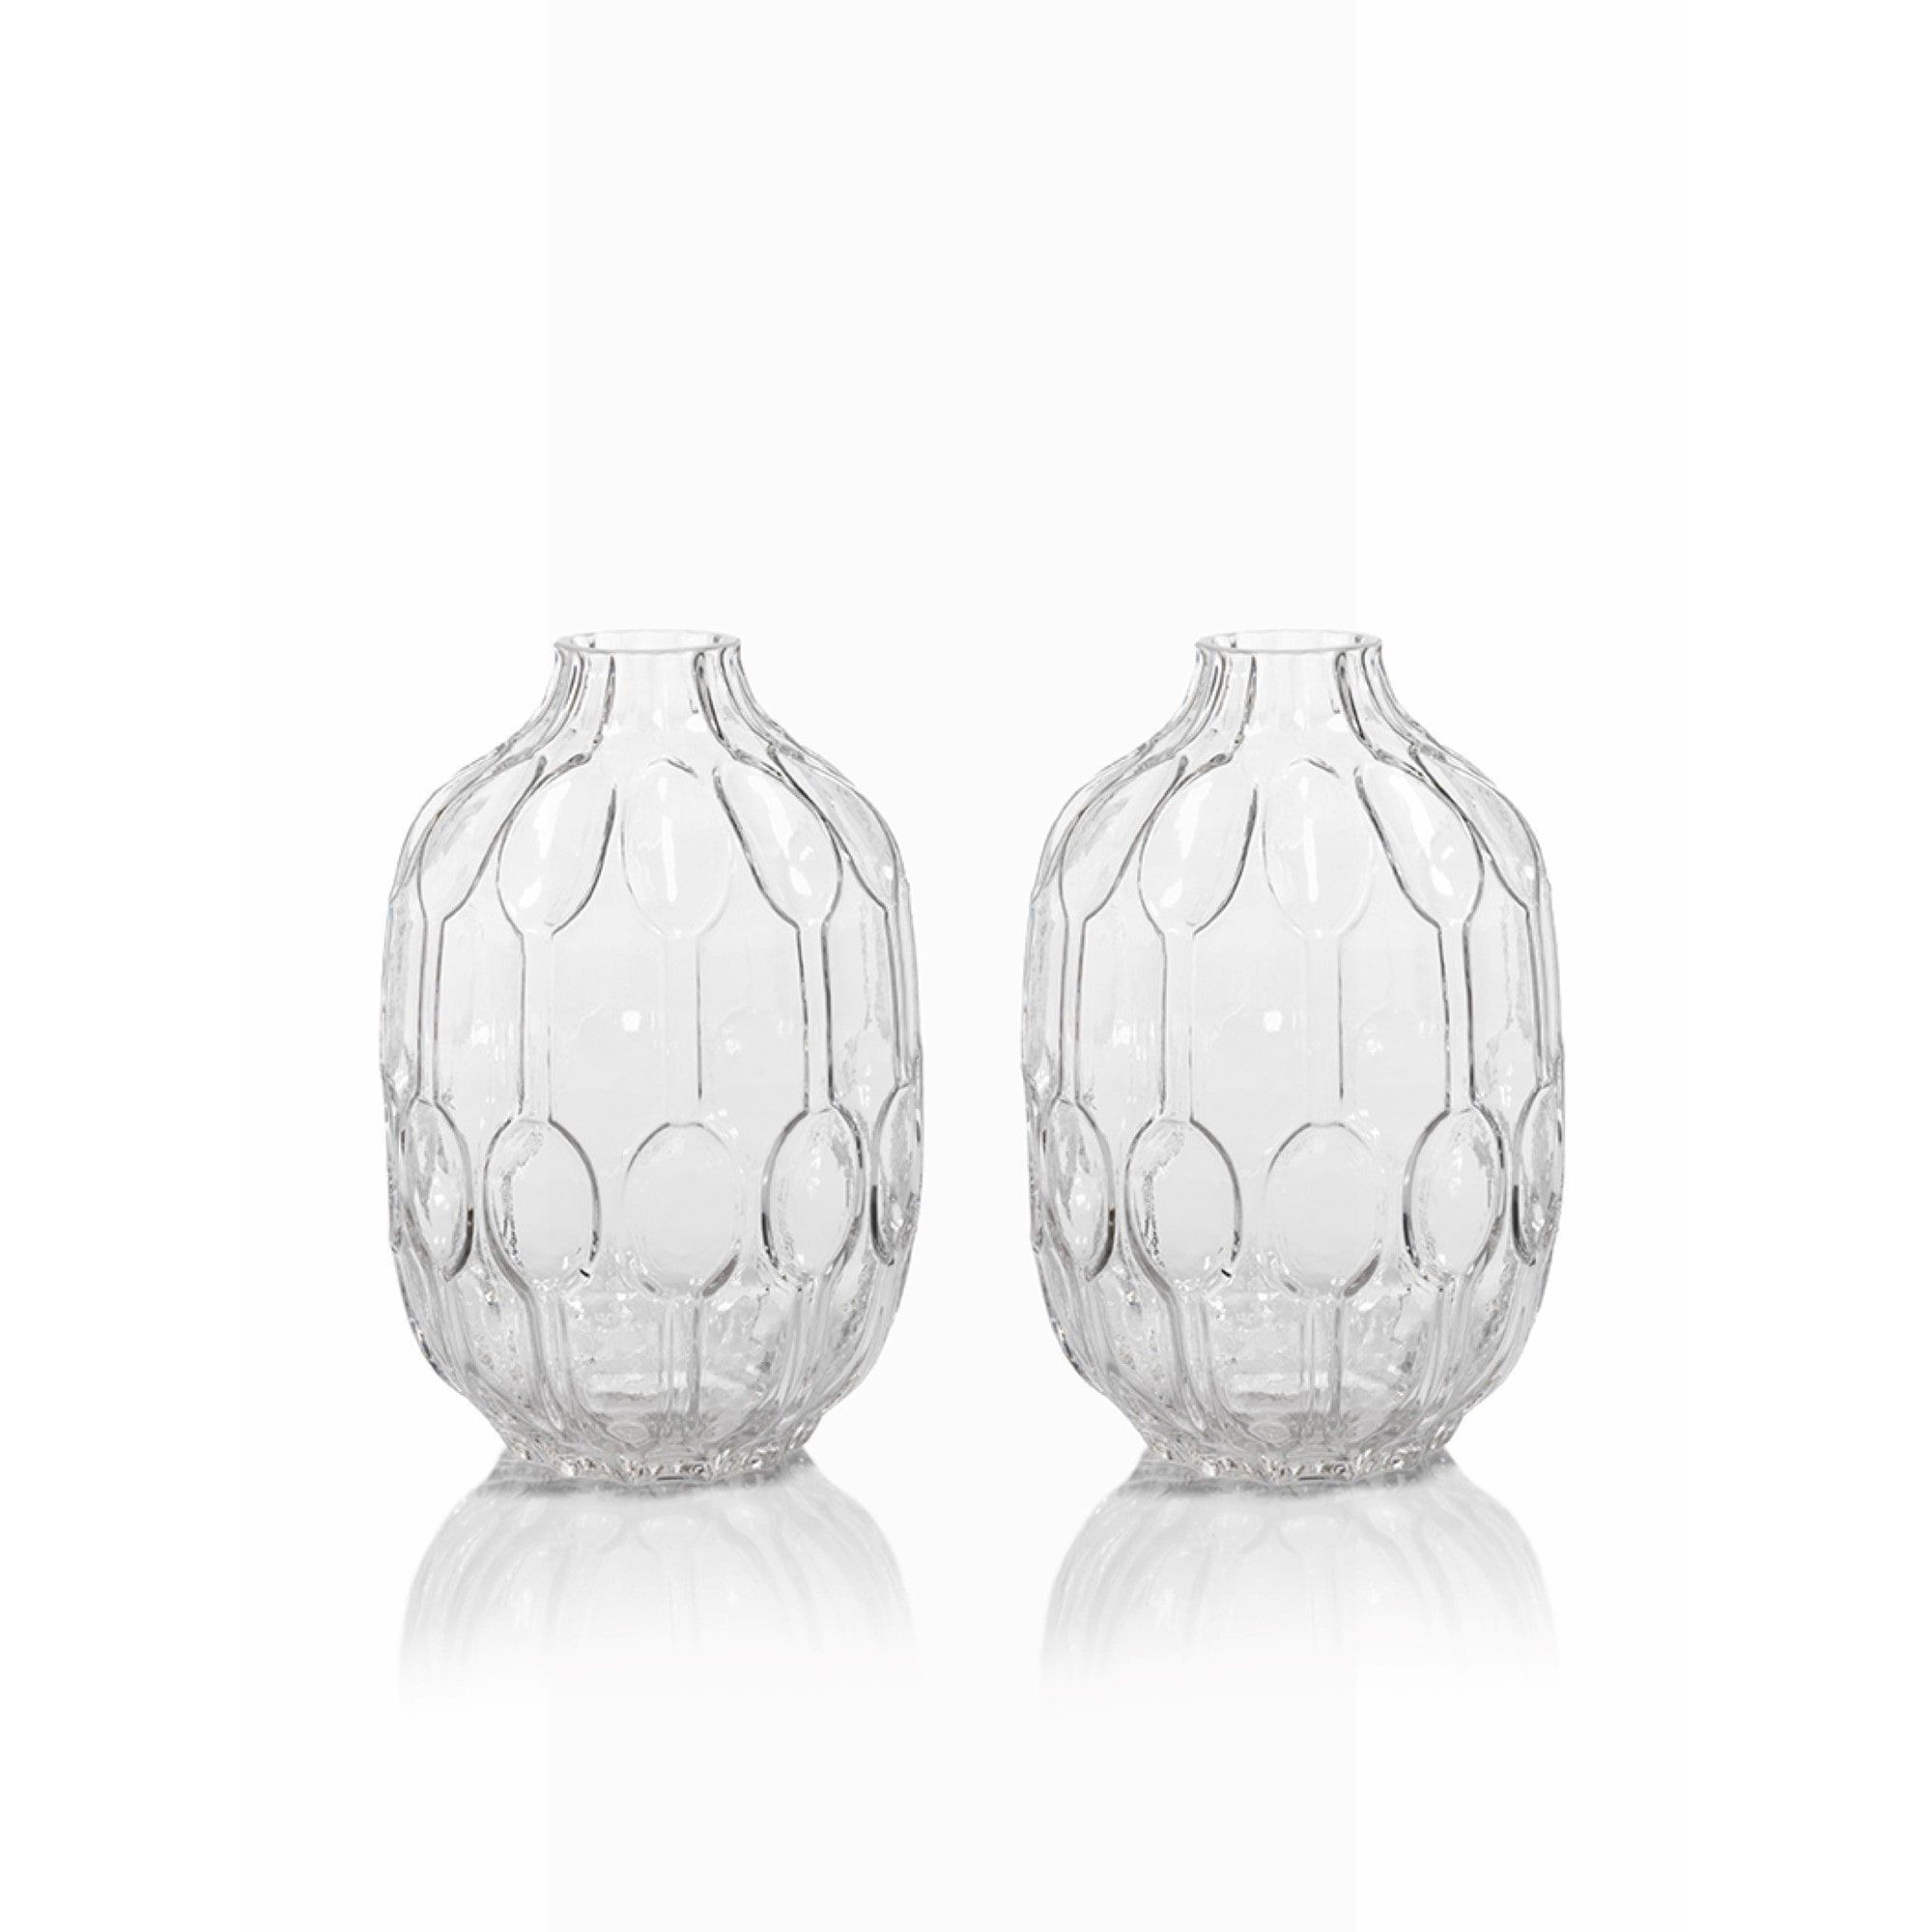 Zodax 7 inch margaux clear glass vase set of 2 clear glass zodax 7 inch margaux clear glass vase set of 2 floridaeventfo Image collections